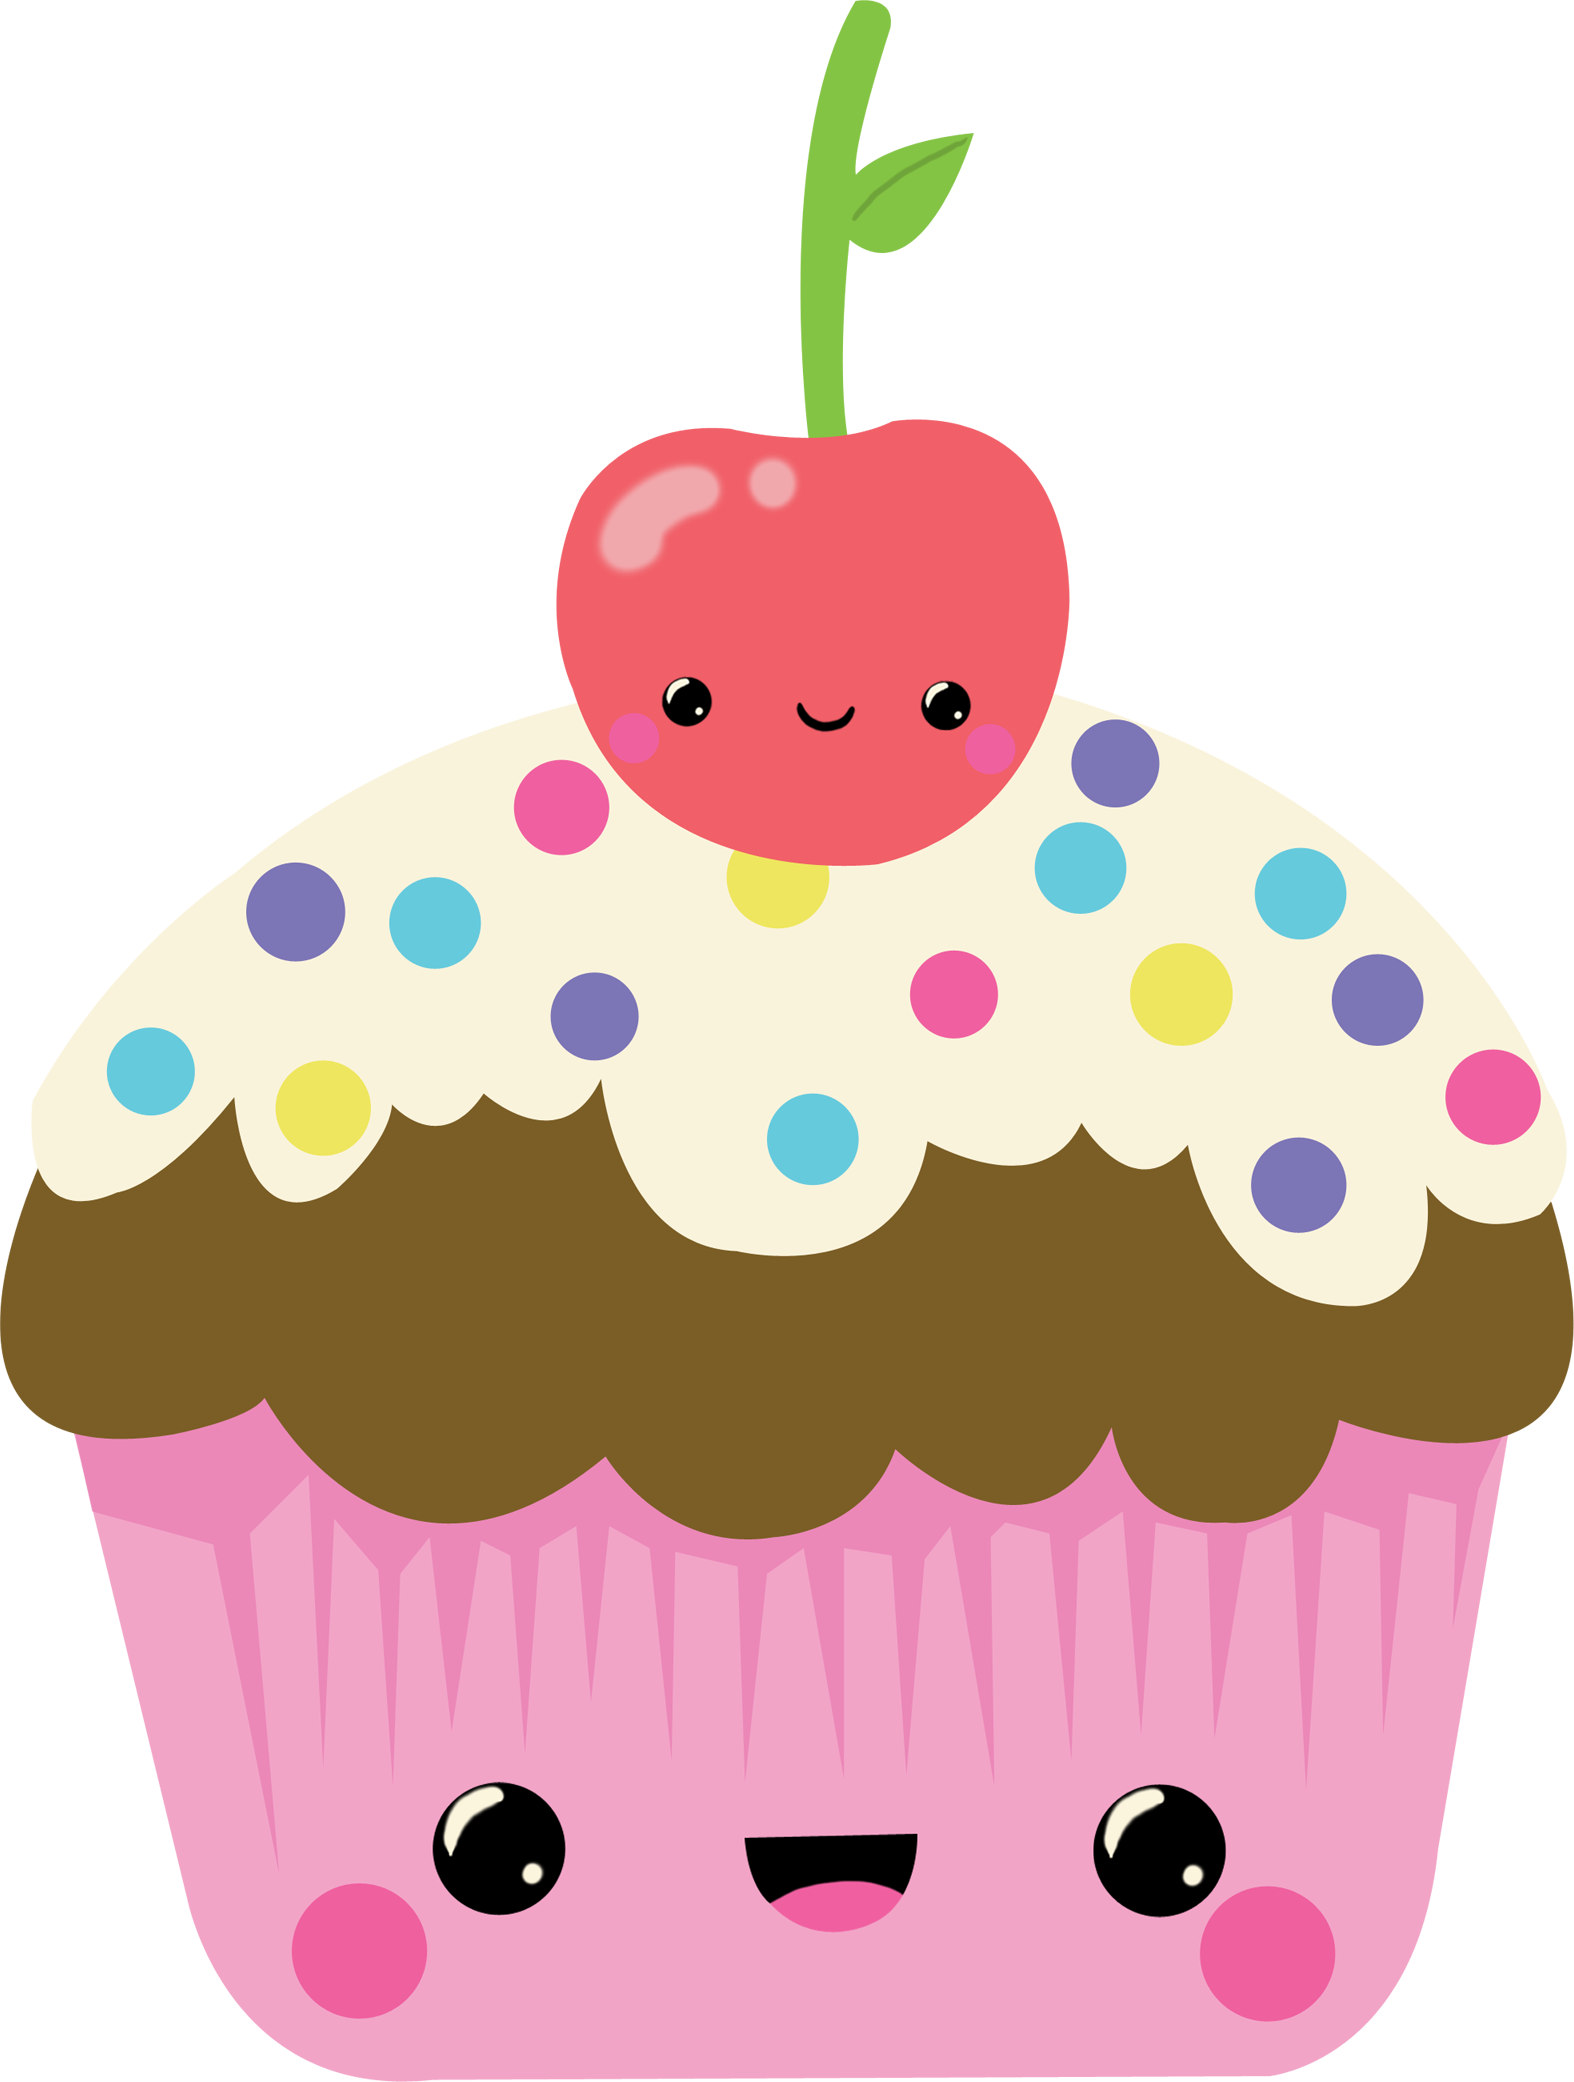 pin Muffin clipart kawaii #9 - Cute Muffin PNG